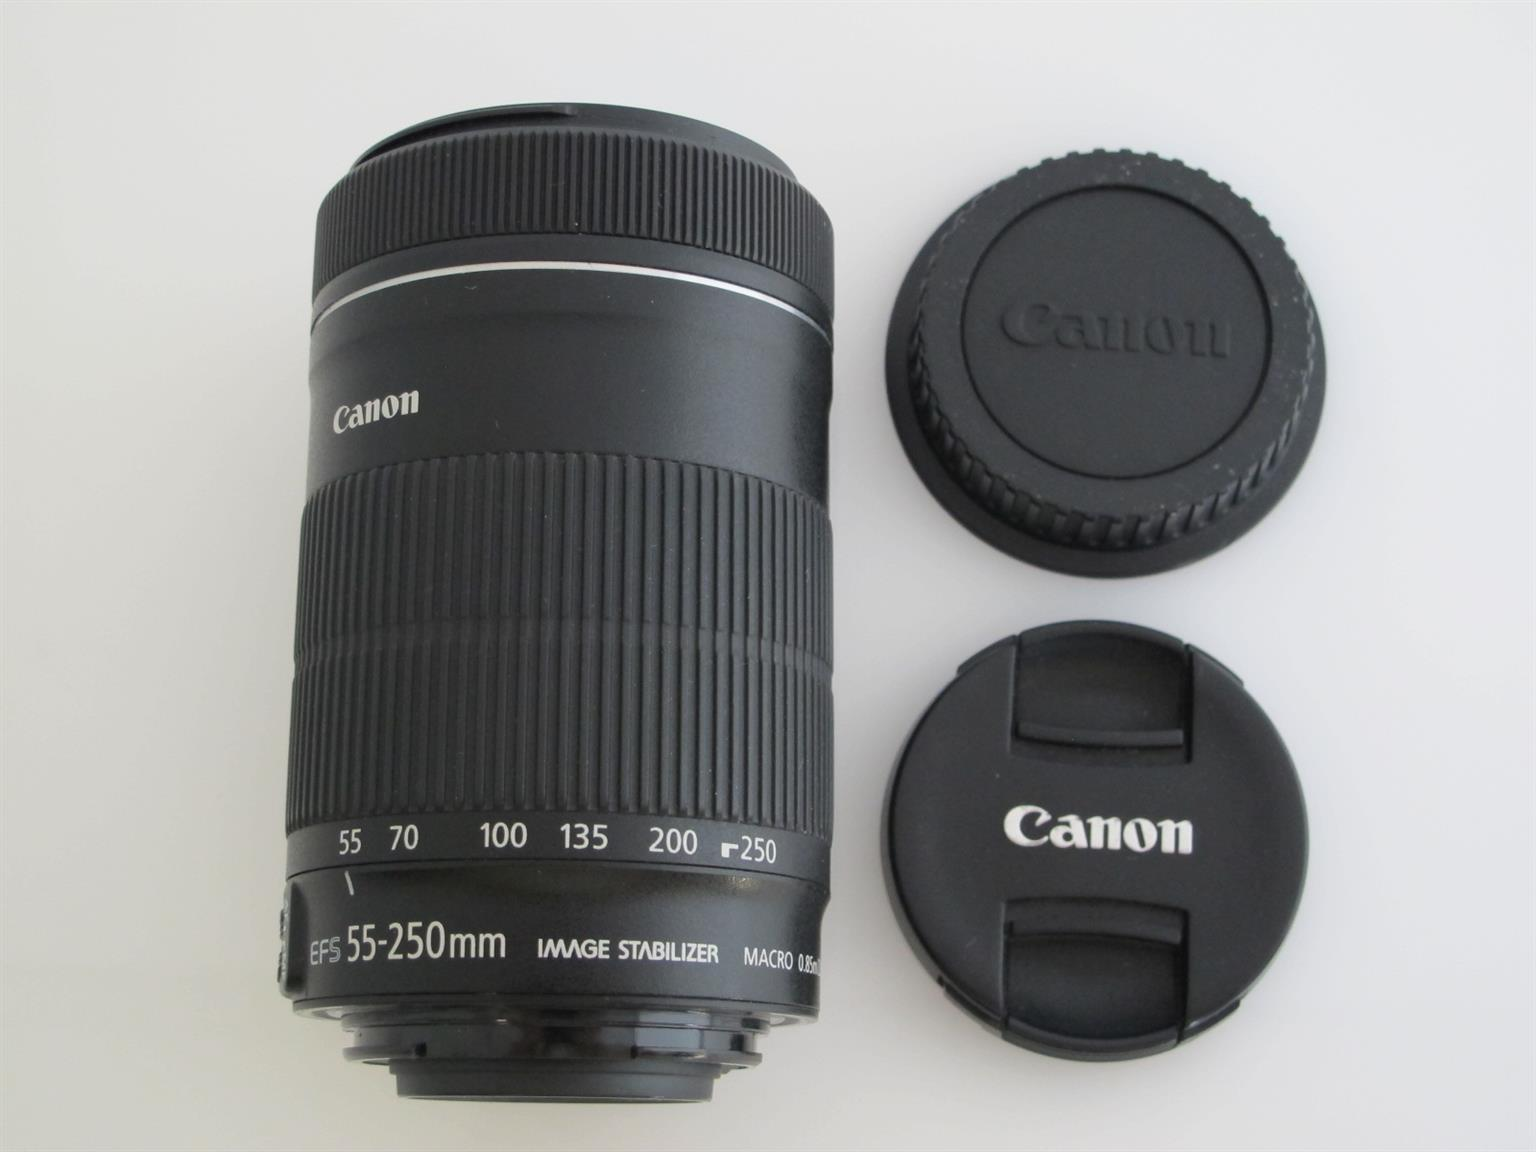 Canon EF-S 55-250mm f/4-5.6 IS STM Lens like new